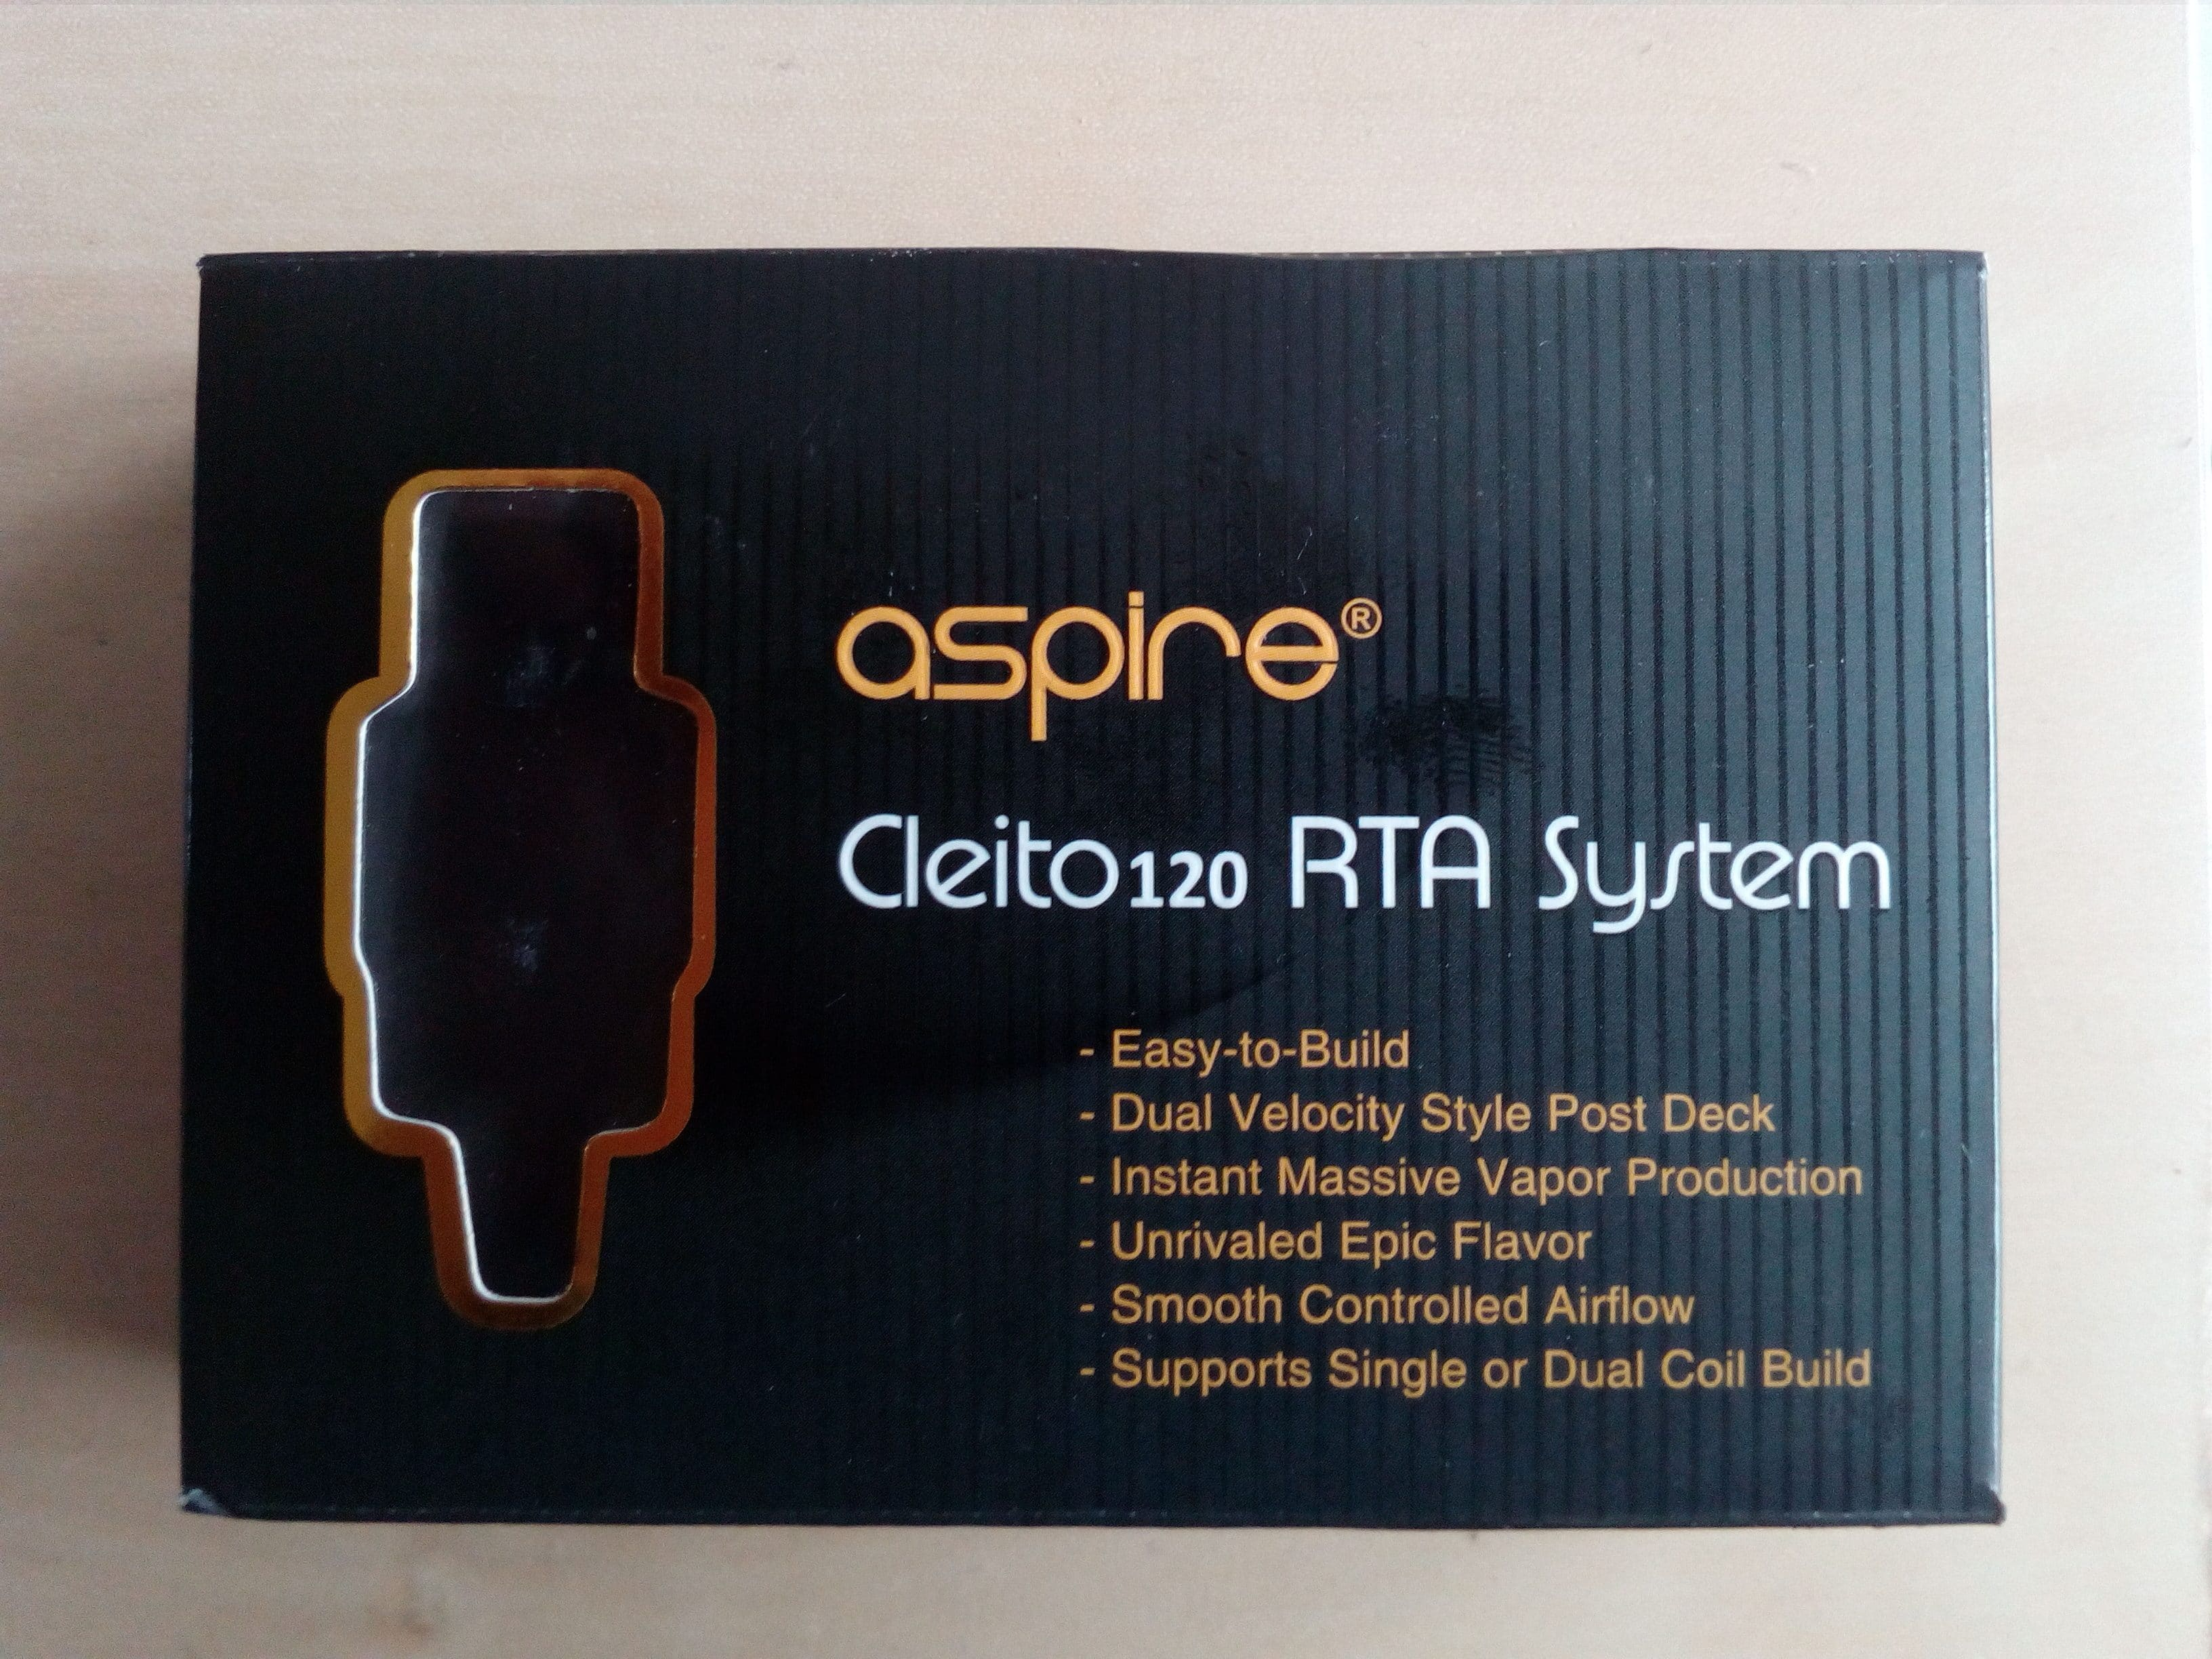 "RTA SYSTEM ""ASPIRE CLEITO 120"" [VapeMotion]"